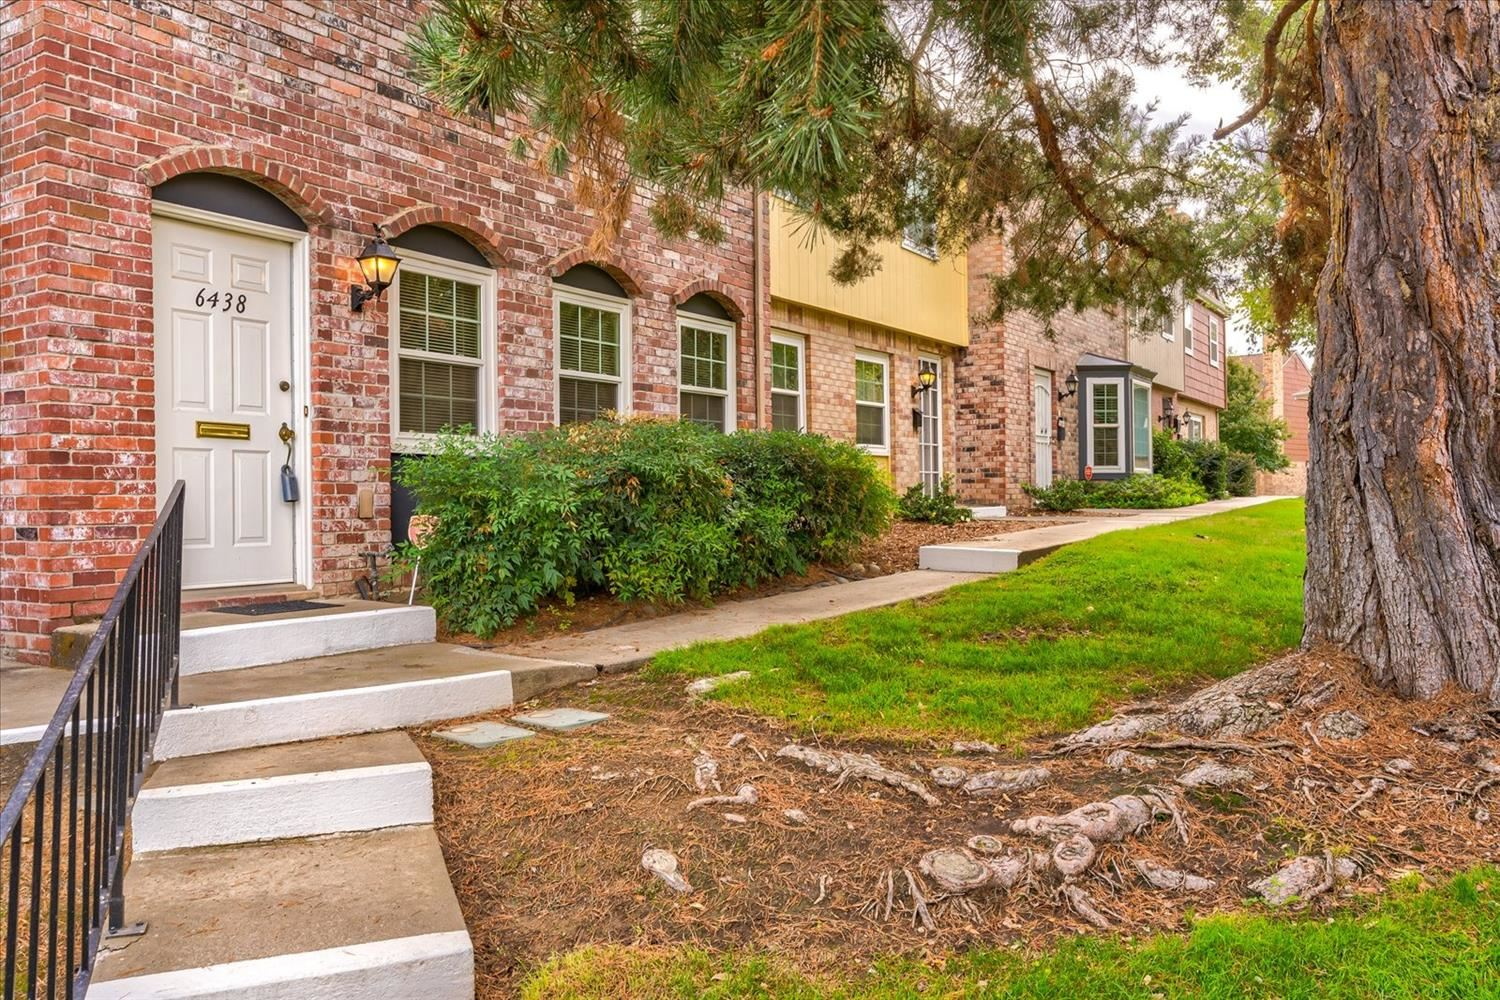 Photo of 6438 Wexford Circle, Citrus Heights, CA 95621 (MLS # 221137190)